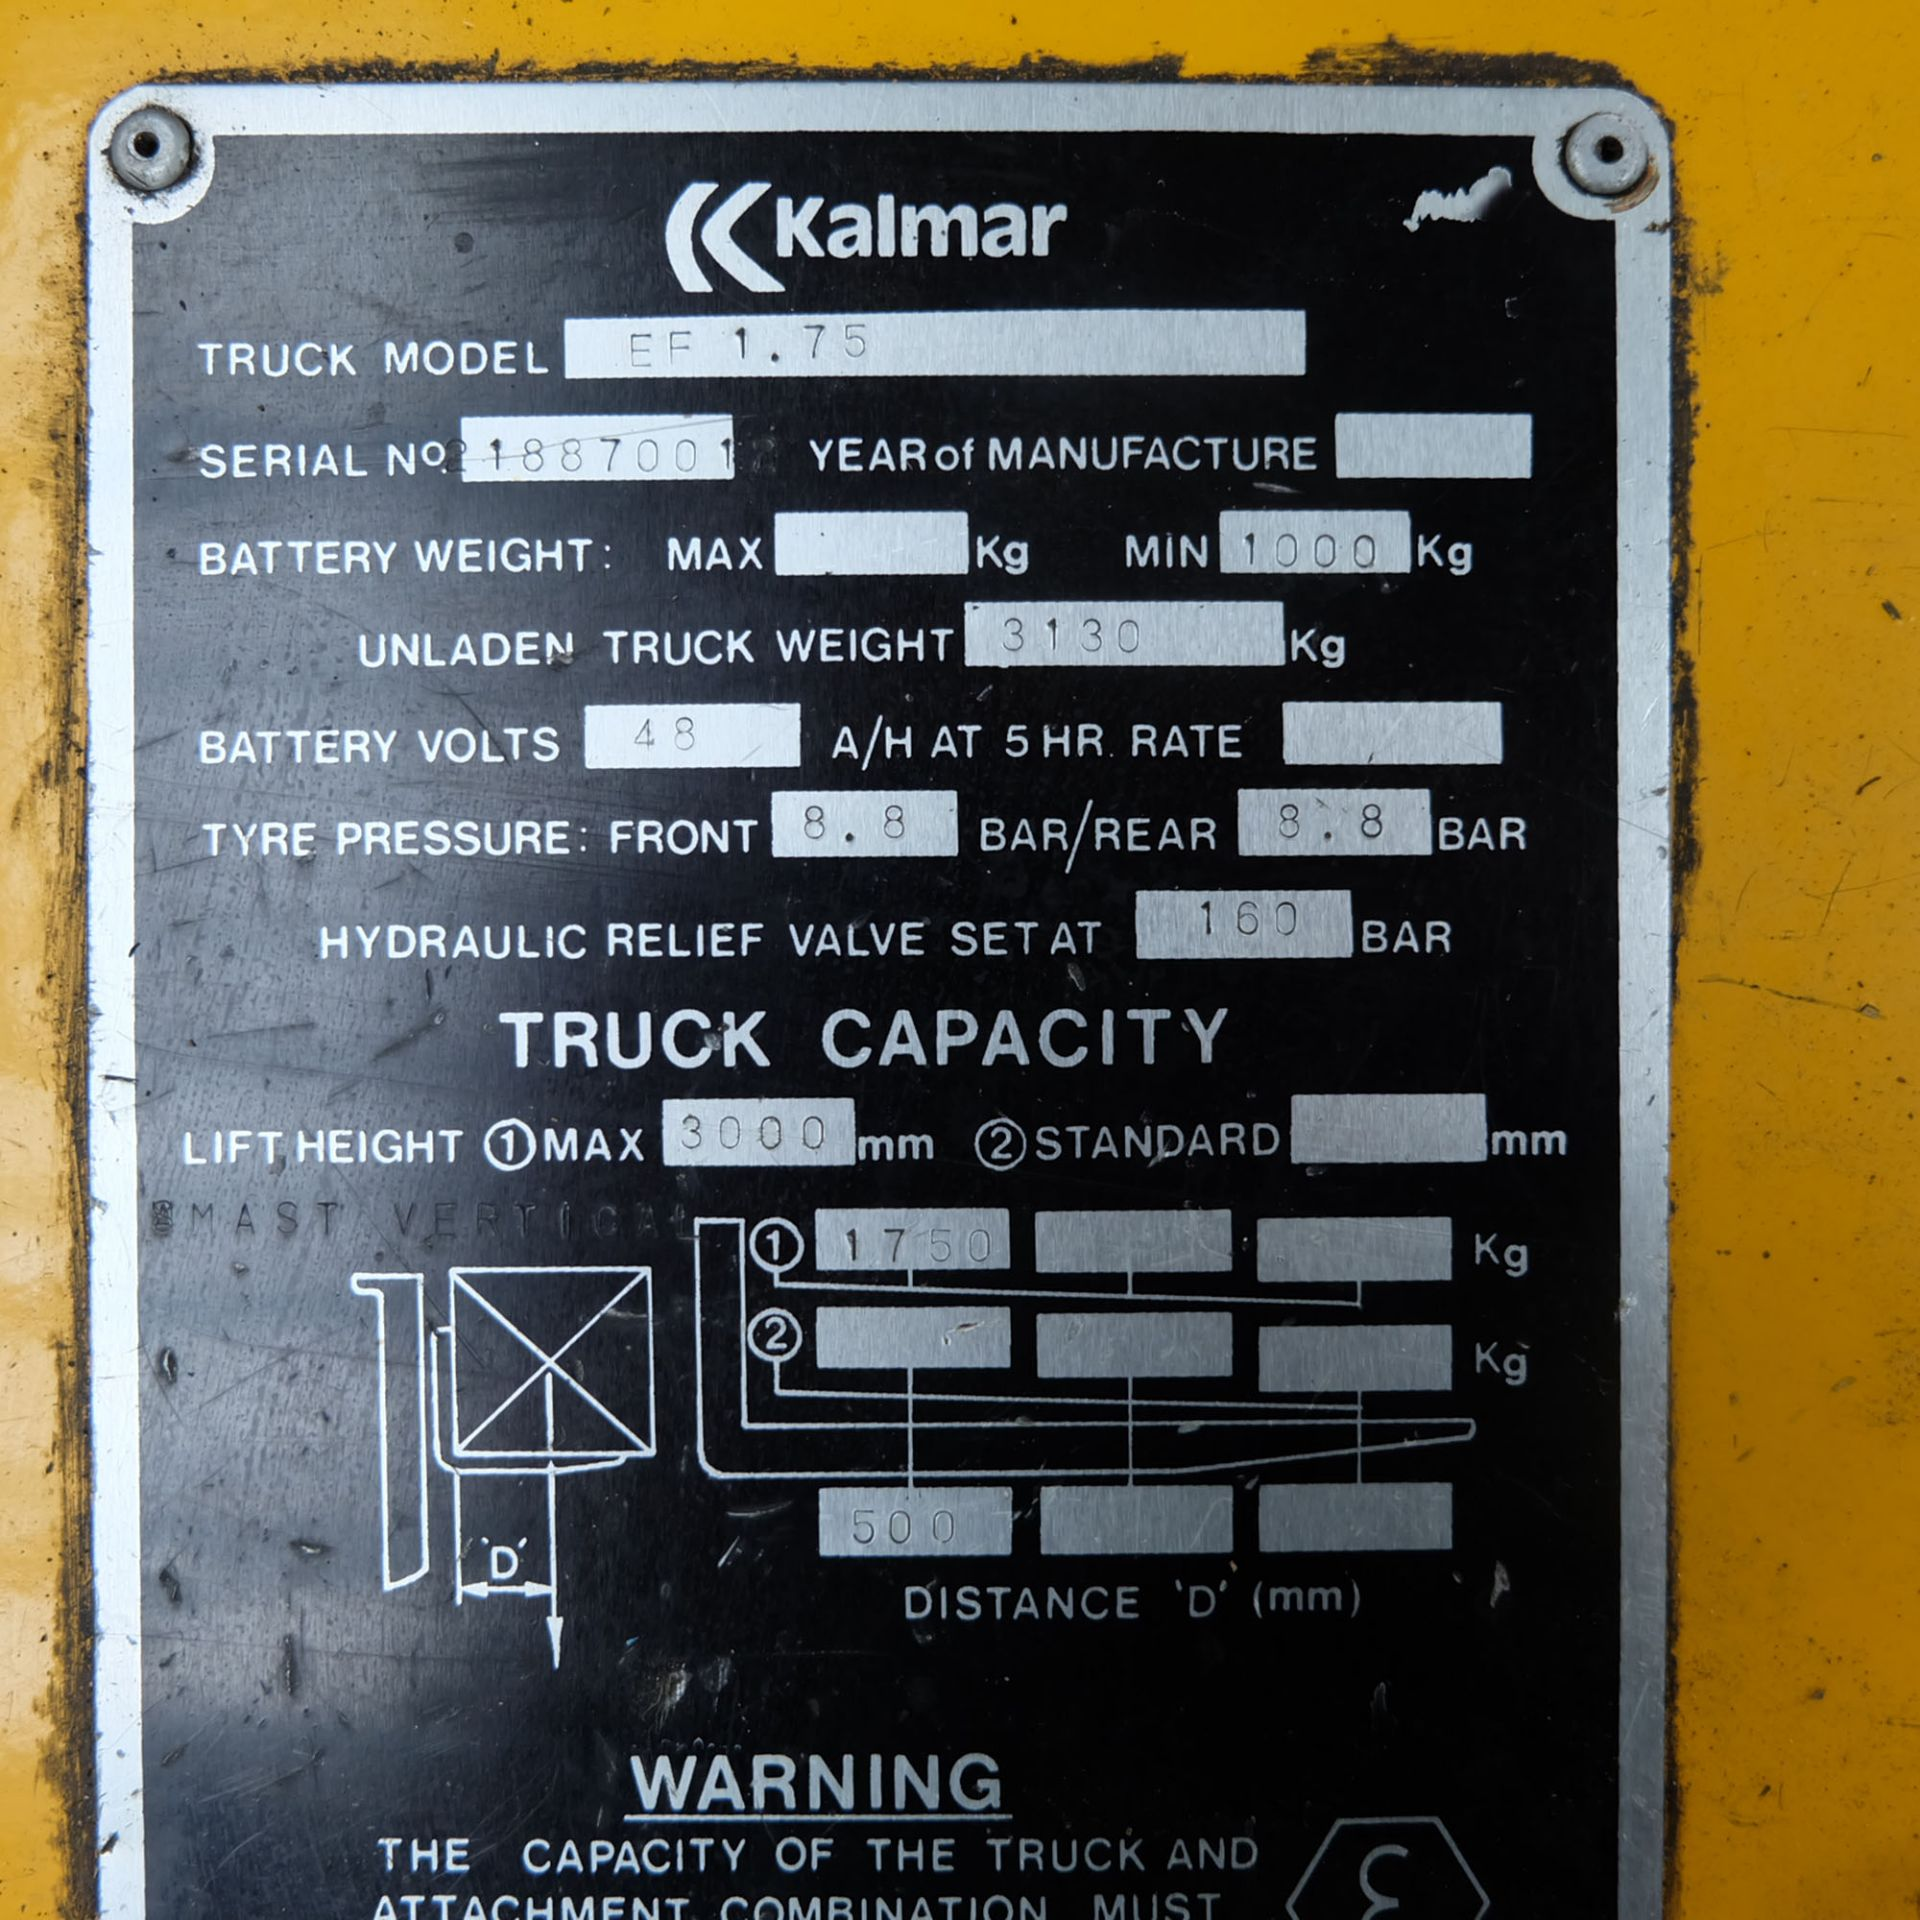 Kalmar Model EF 1.75. Electric Fork Lift Truck With Battery Charger - Image 7 of 10